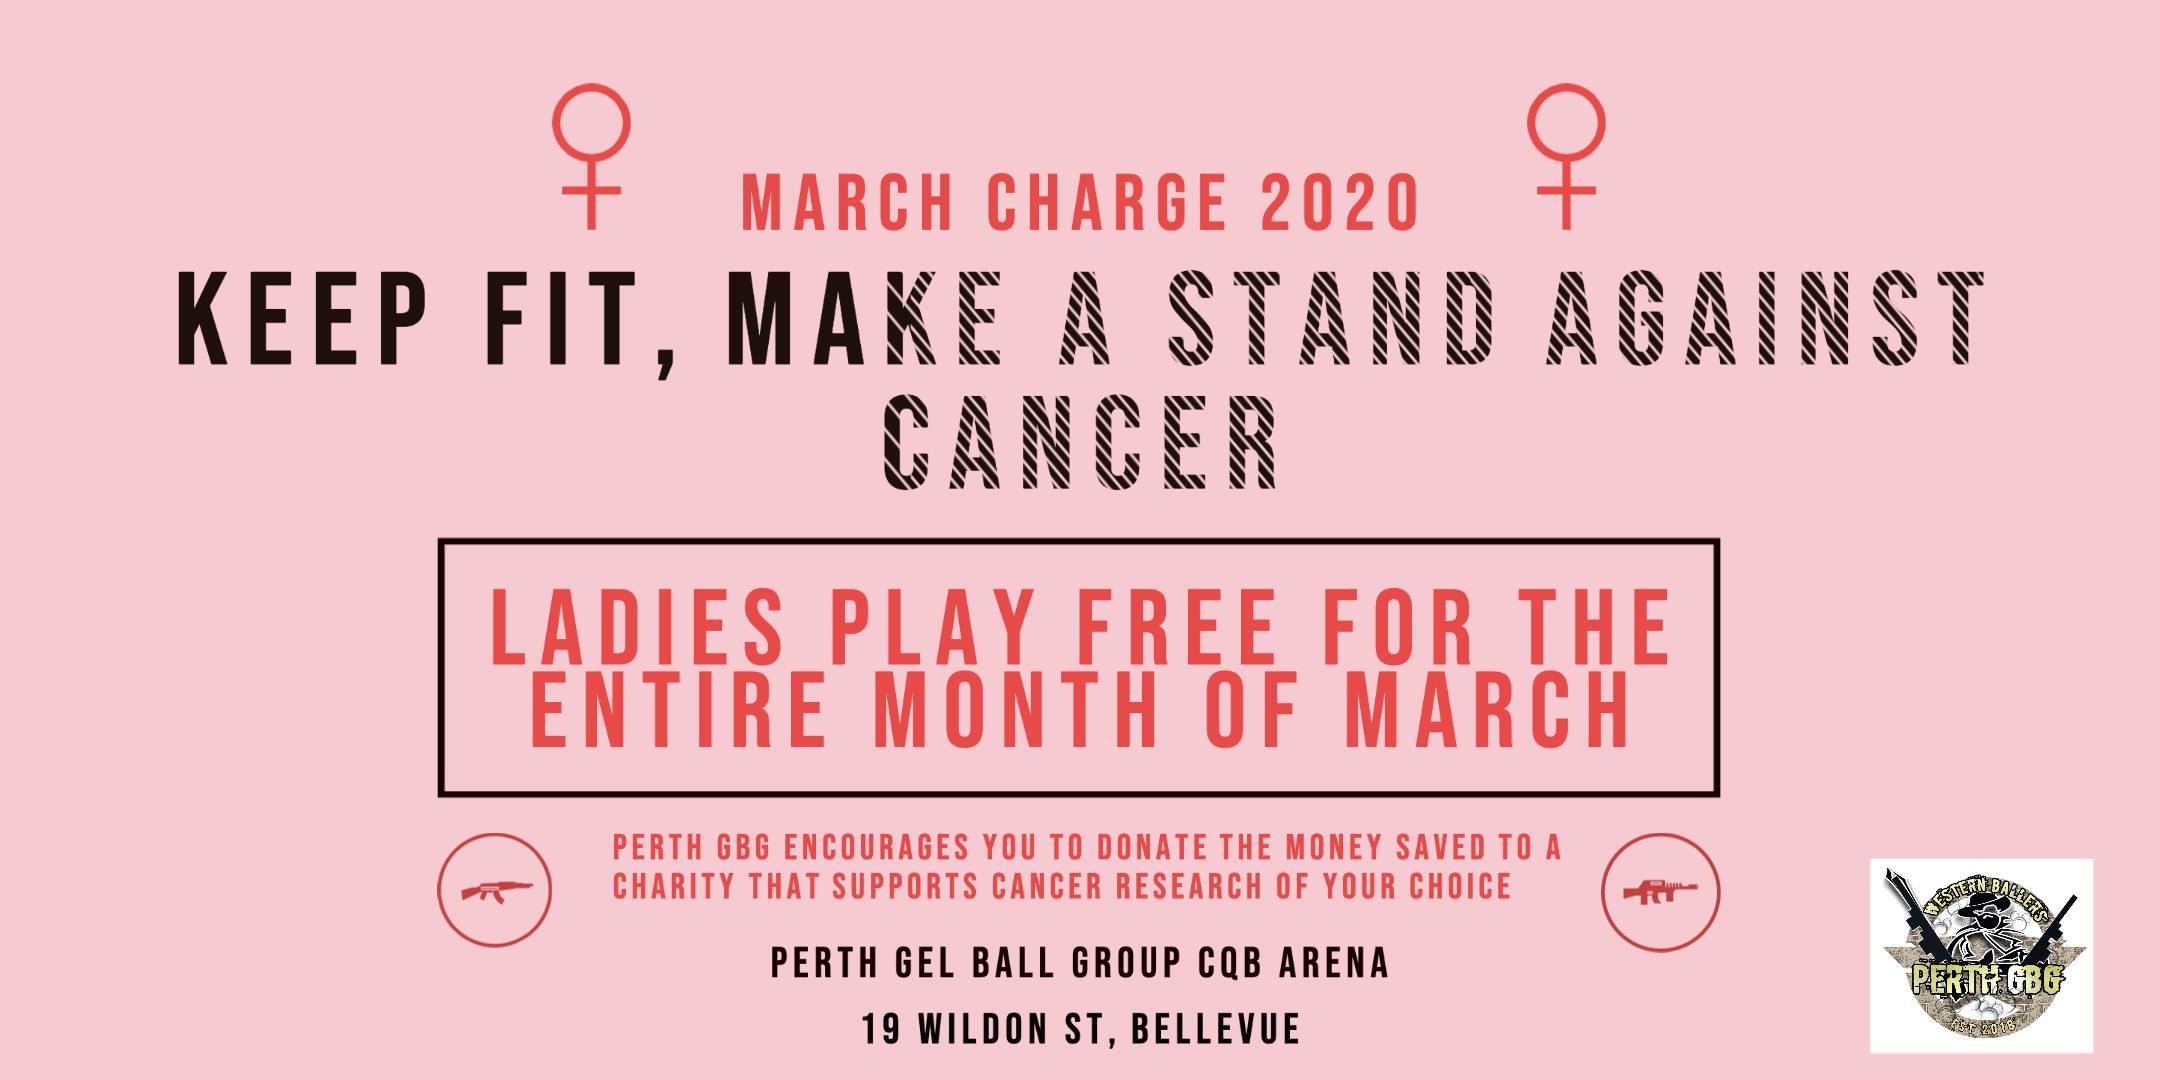 March Charge 2020